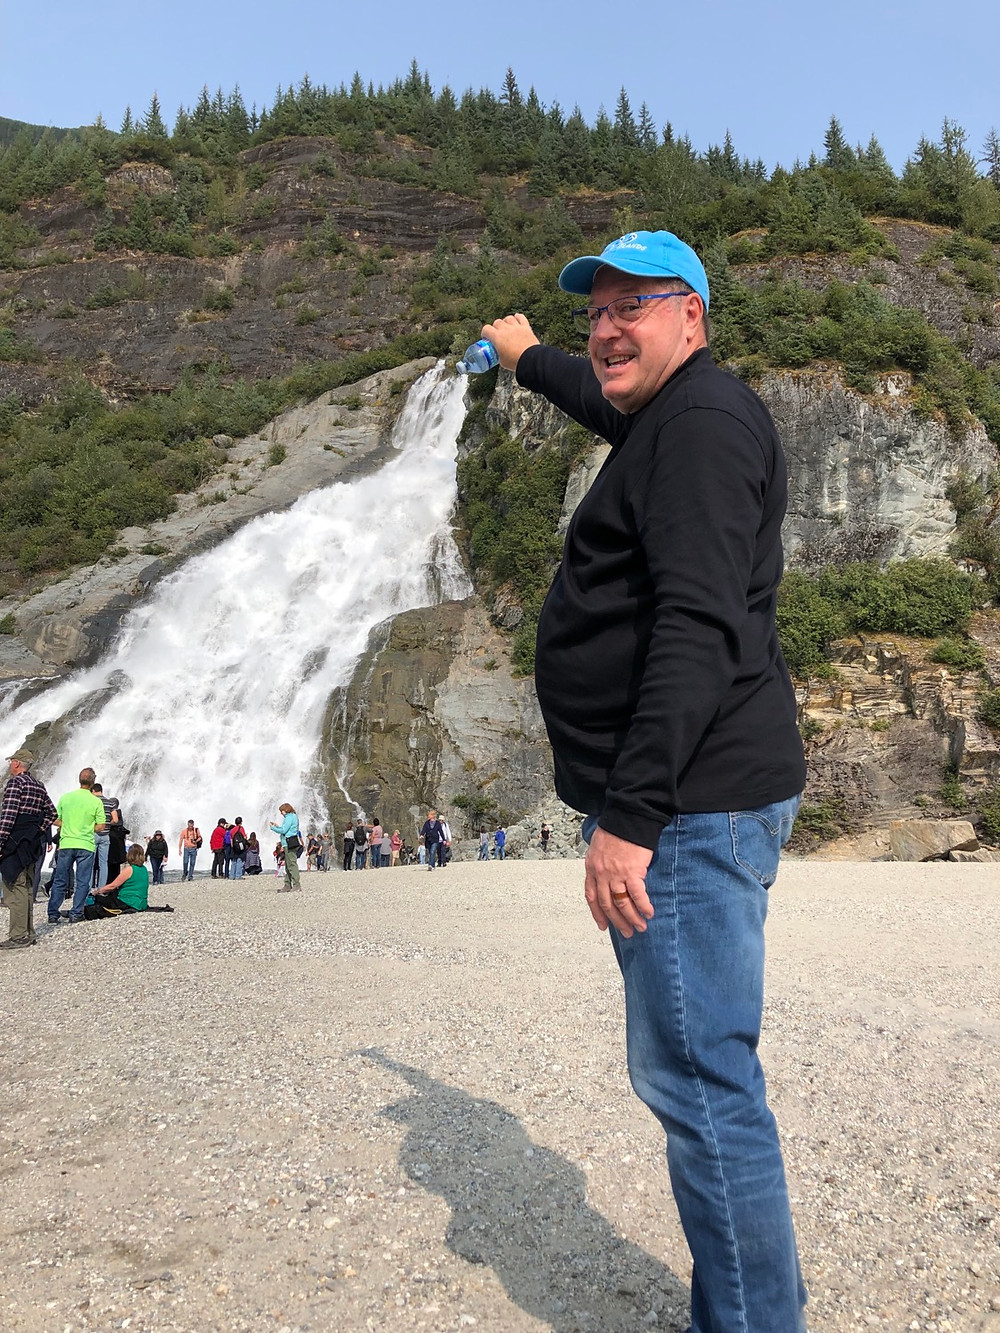 Man pretending to be emptying his water bottle but he is standing near a waterfall